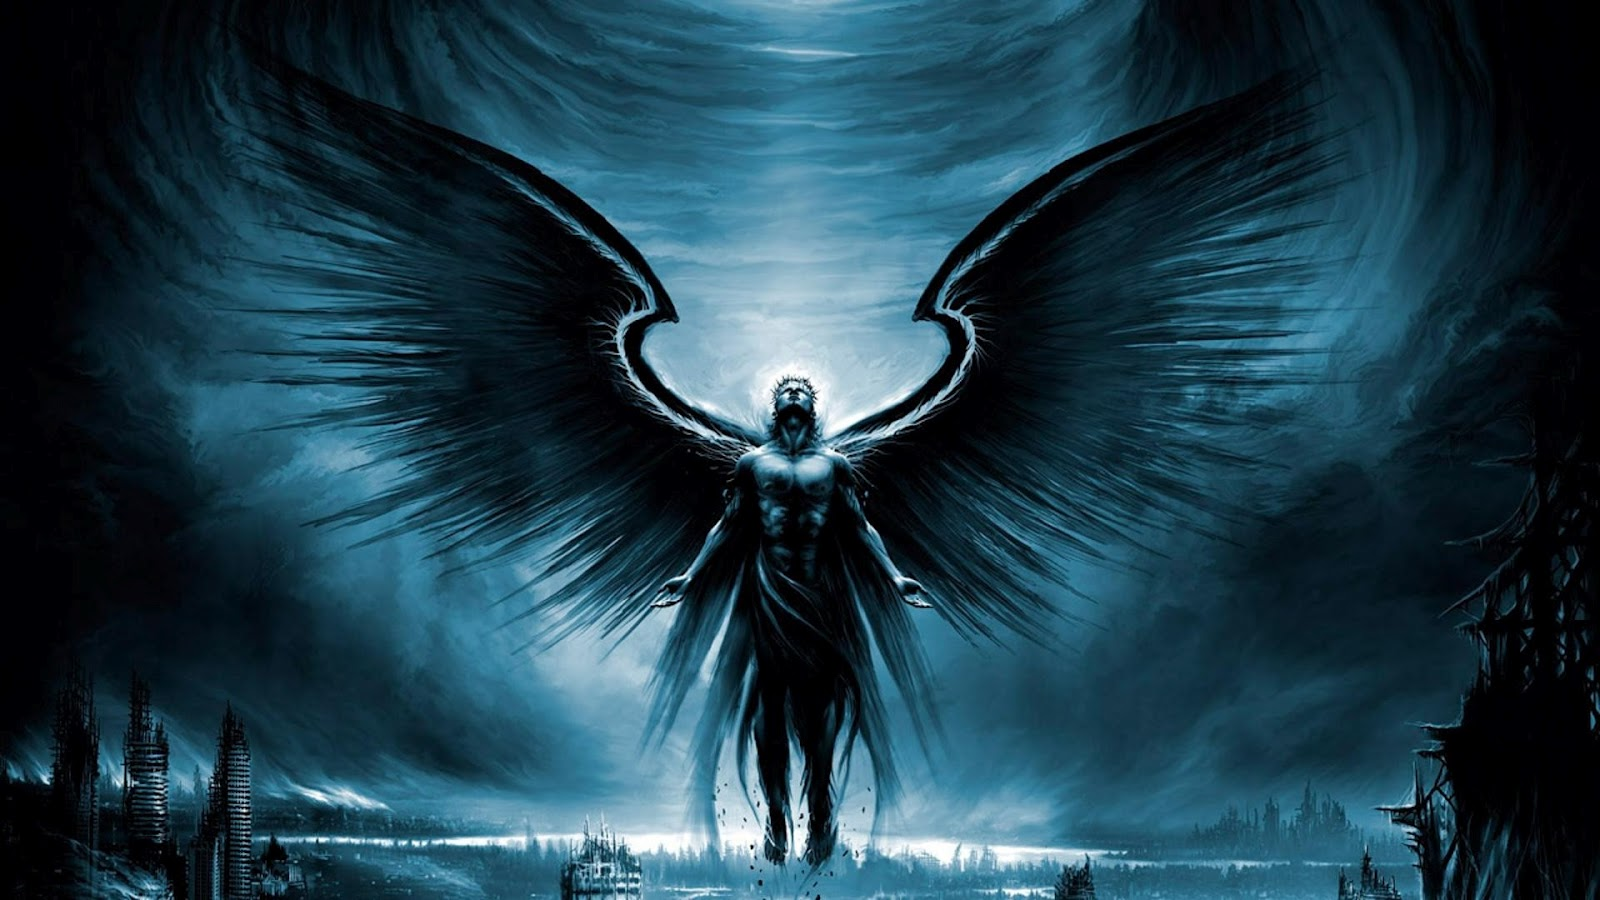 12 hd wallpapers angel of darkness